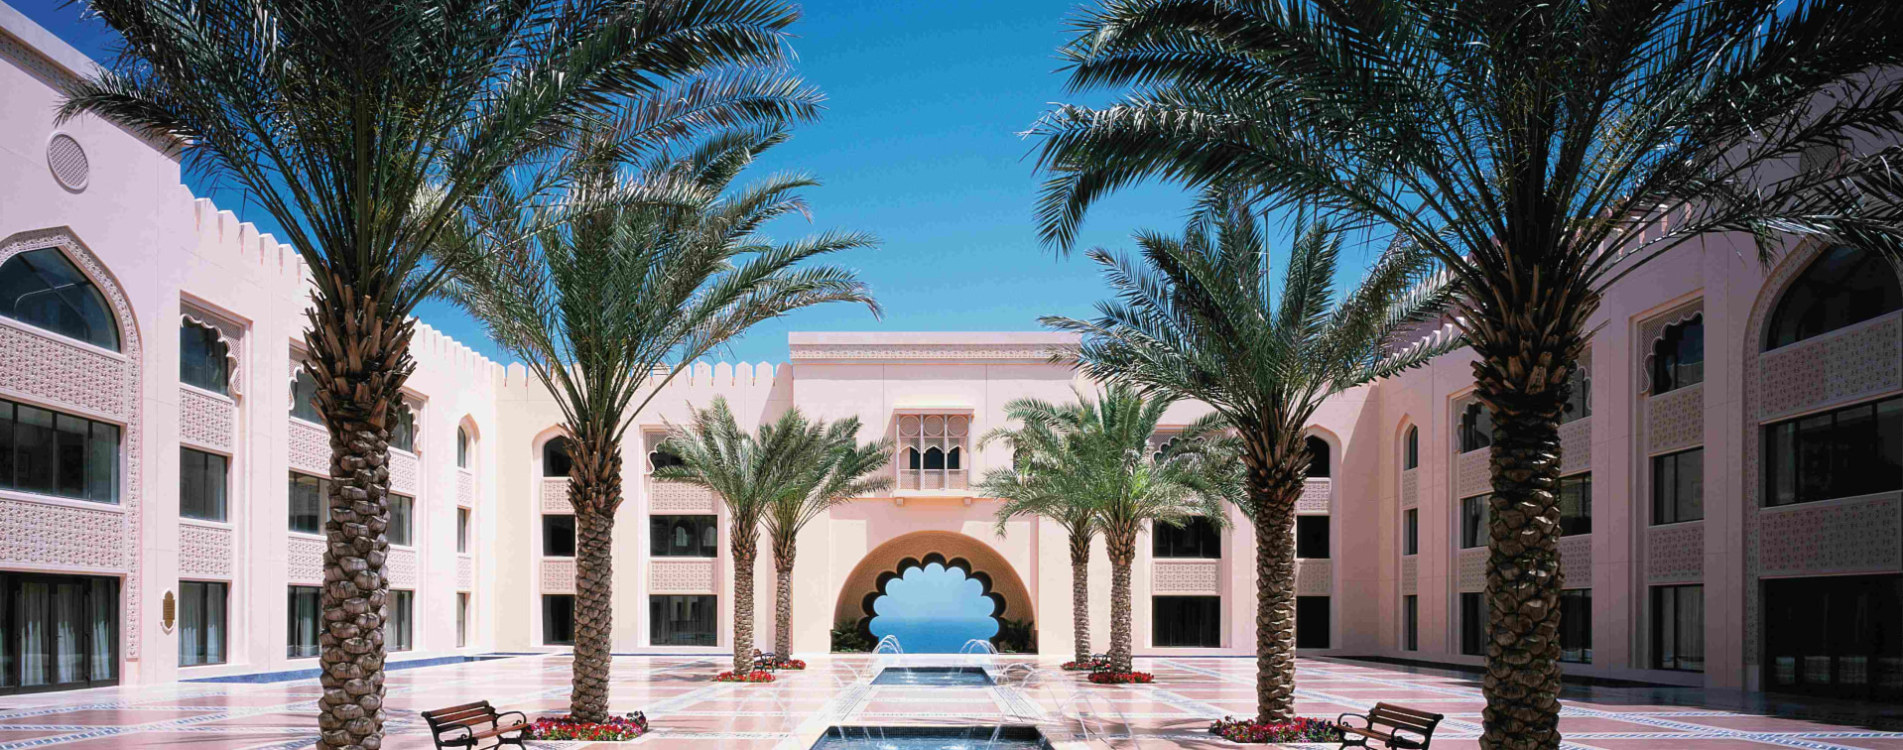 Shangri-La-Al-Husn-Resort-and-Spa-Innenhof-Tagsüber-Oman.jpg